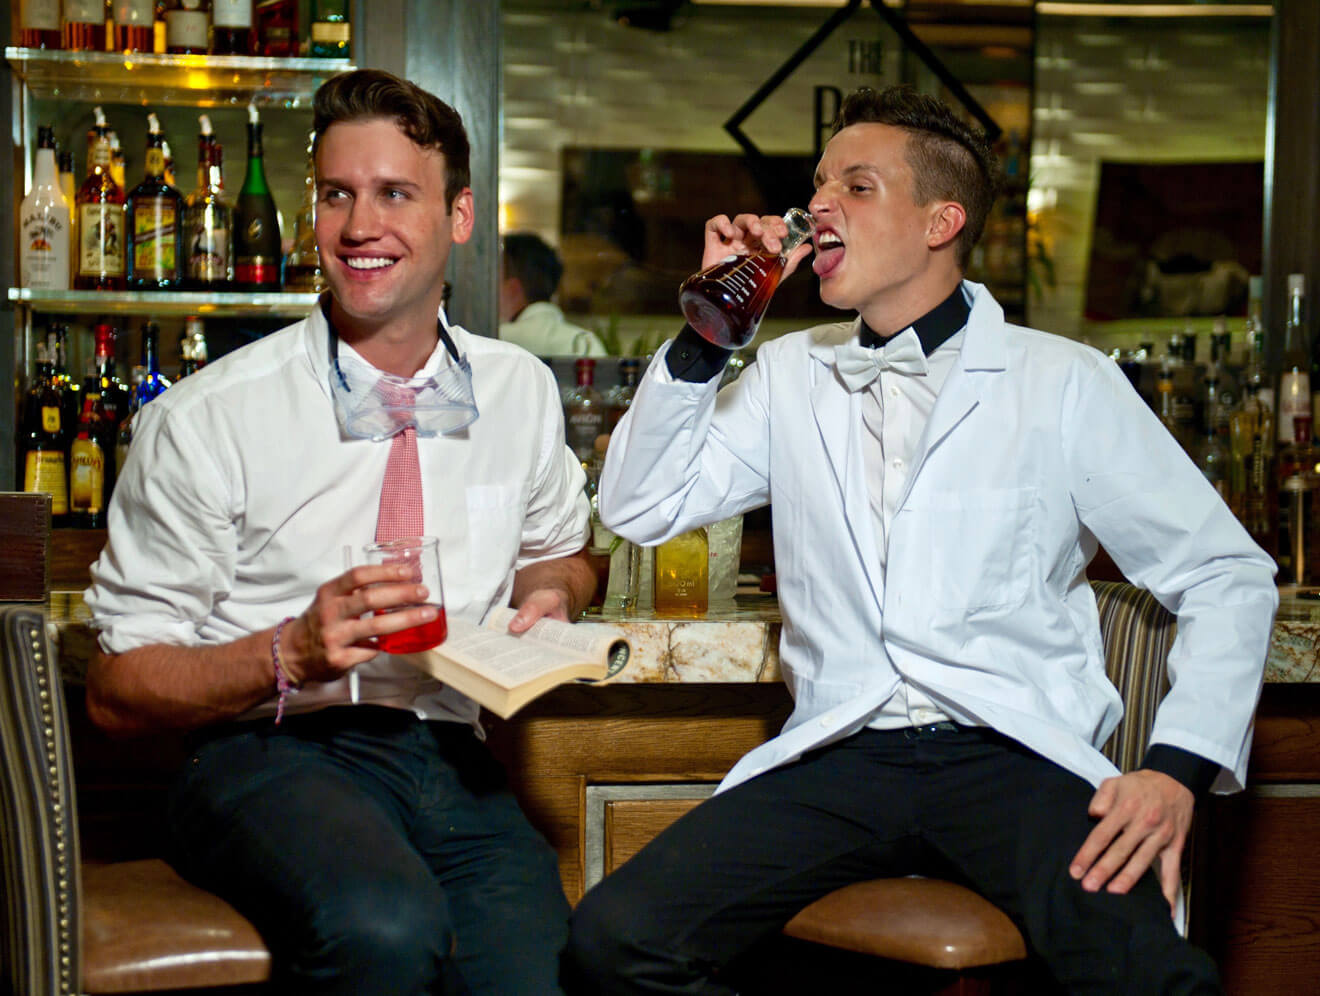 Gregory Lucas and Parker Boase Enjoying a Cocktail at the Bar